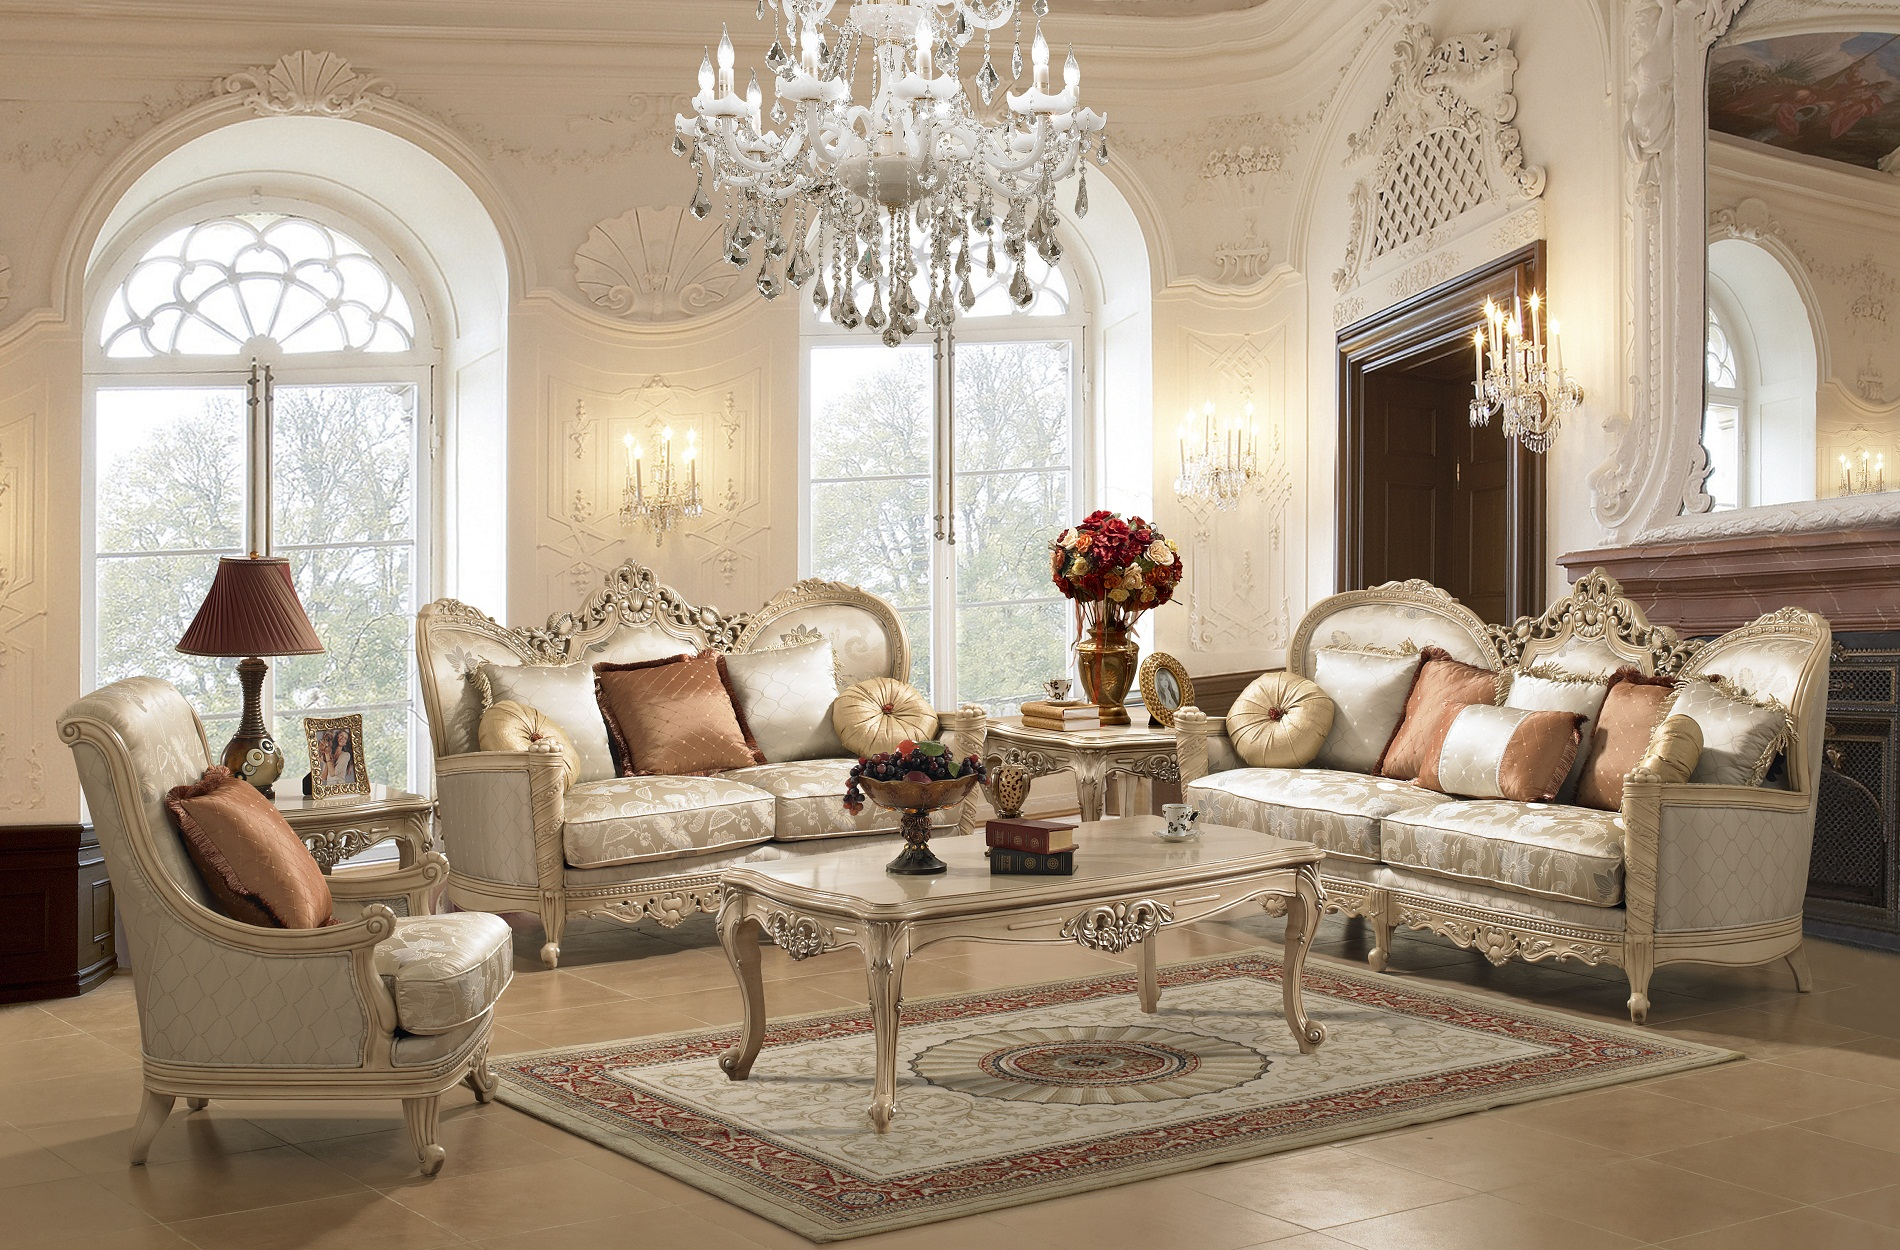 living-room-glamorous-decorative-pillows-couch-animal-print-decorative-pillows-for-couches-decorativ